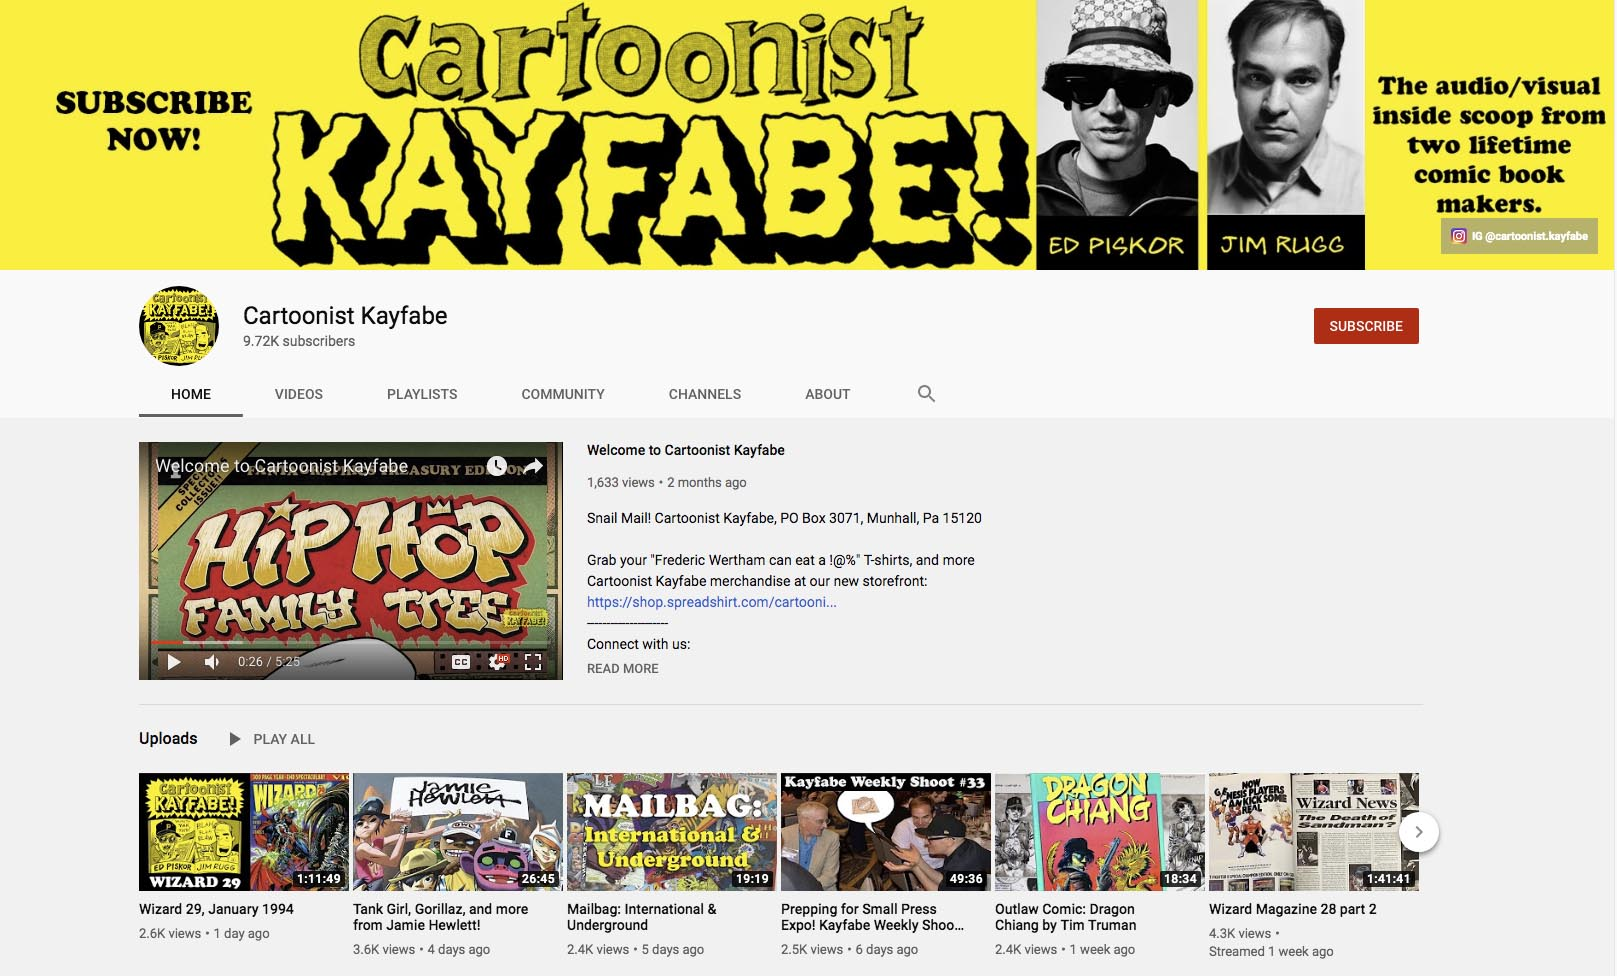 Cartoonist Kayfabe - comic channels on youtube